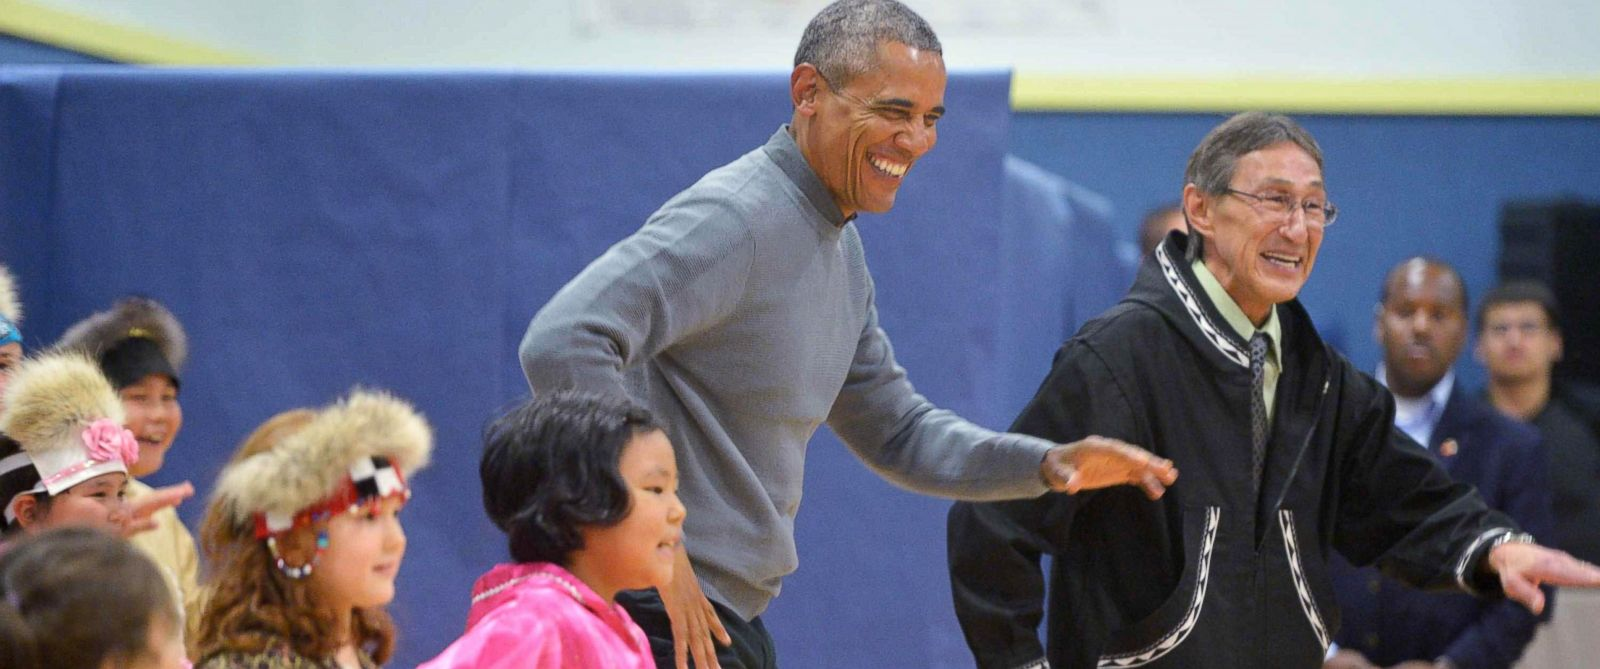 PHOTO: President Barack Obama dances with children after attending a cultural performance in Dillingham Middle School in Dillingham, Alaska, Sept. 2, 2015.